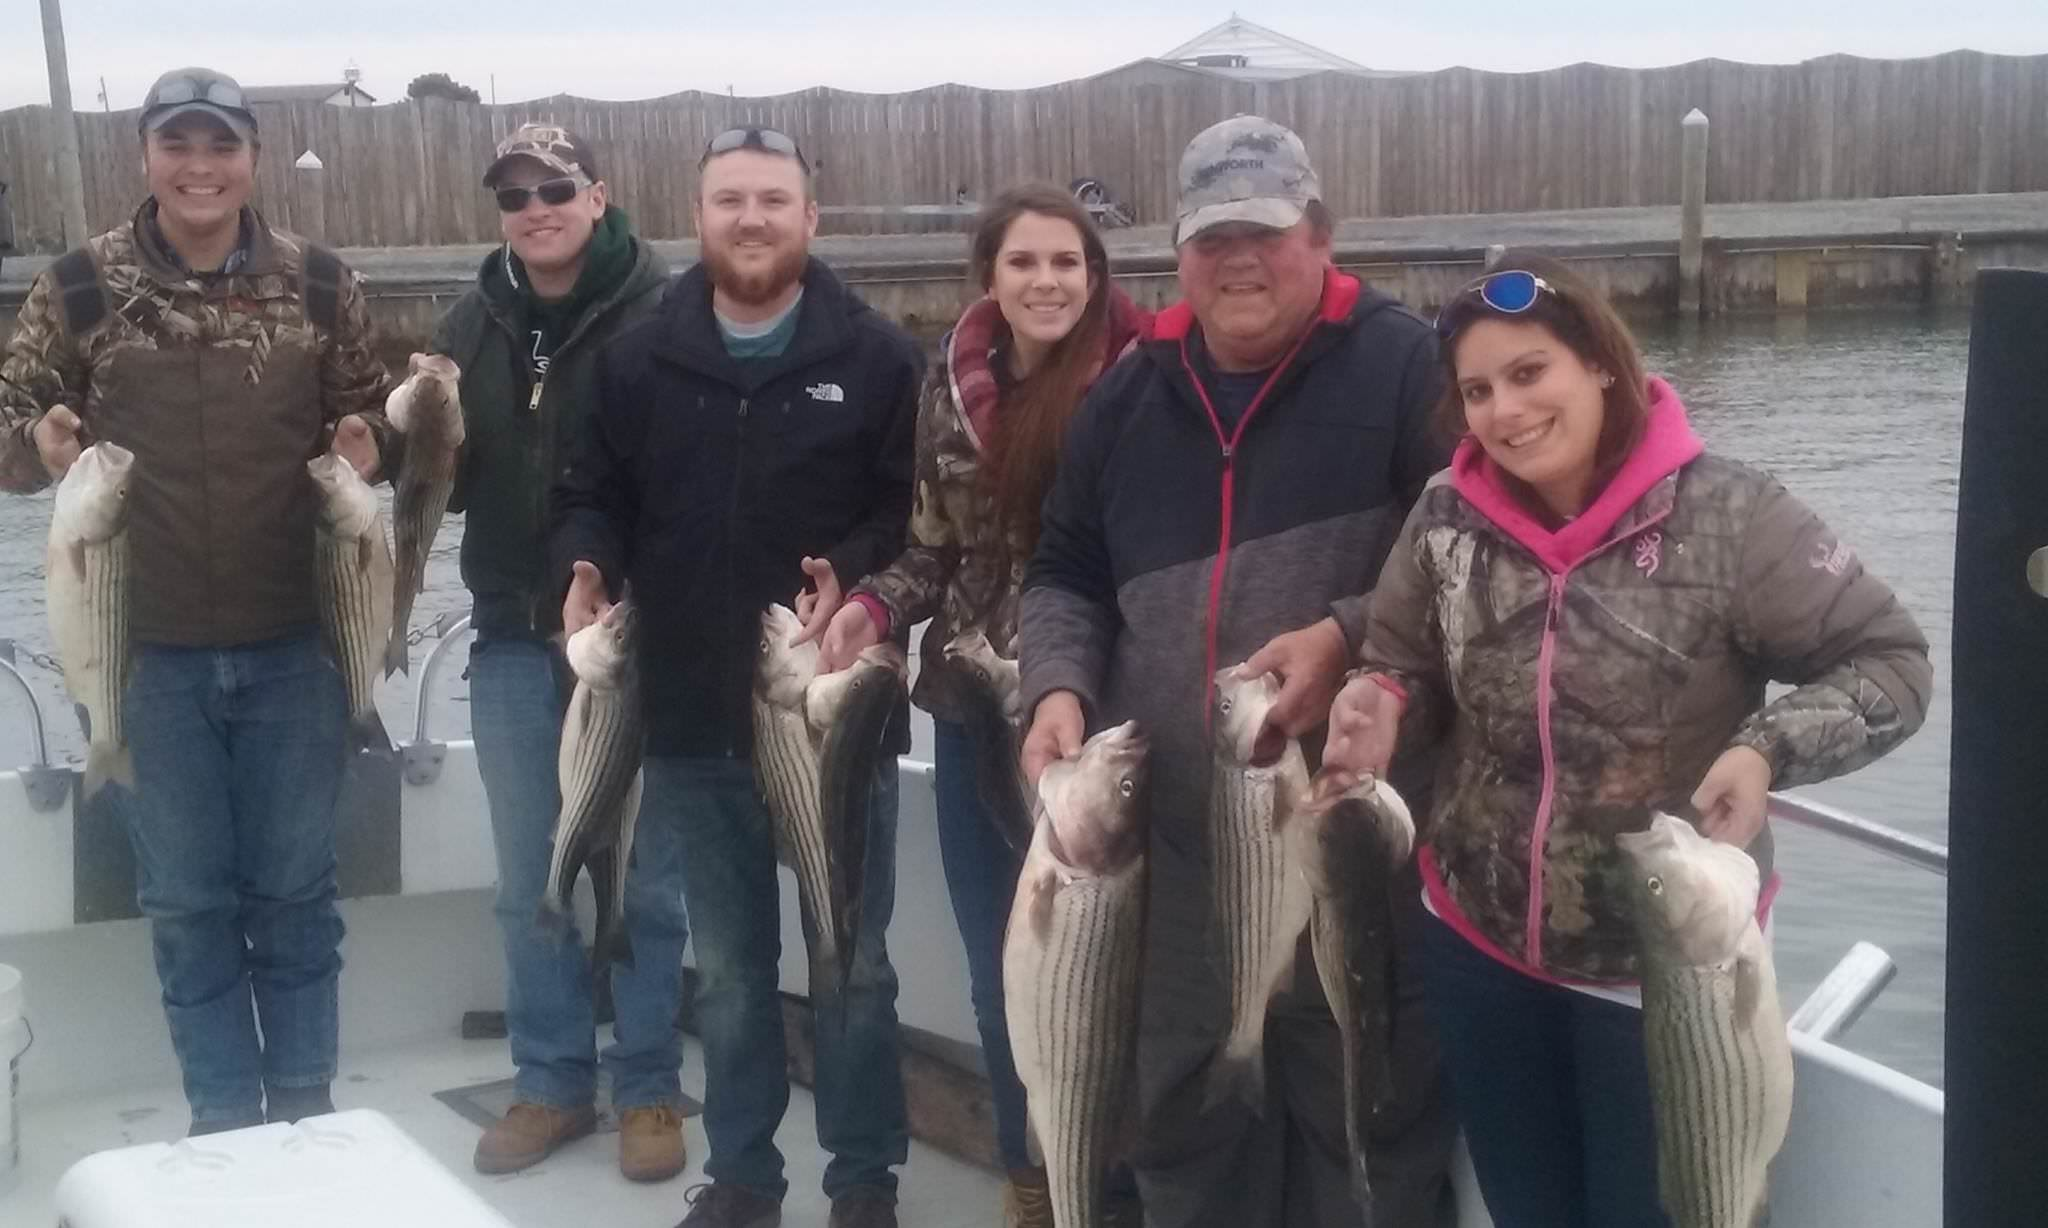 Fall Fishing for Rockfish on the Chesapeake Bay!